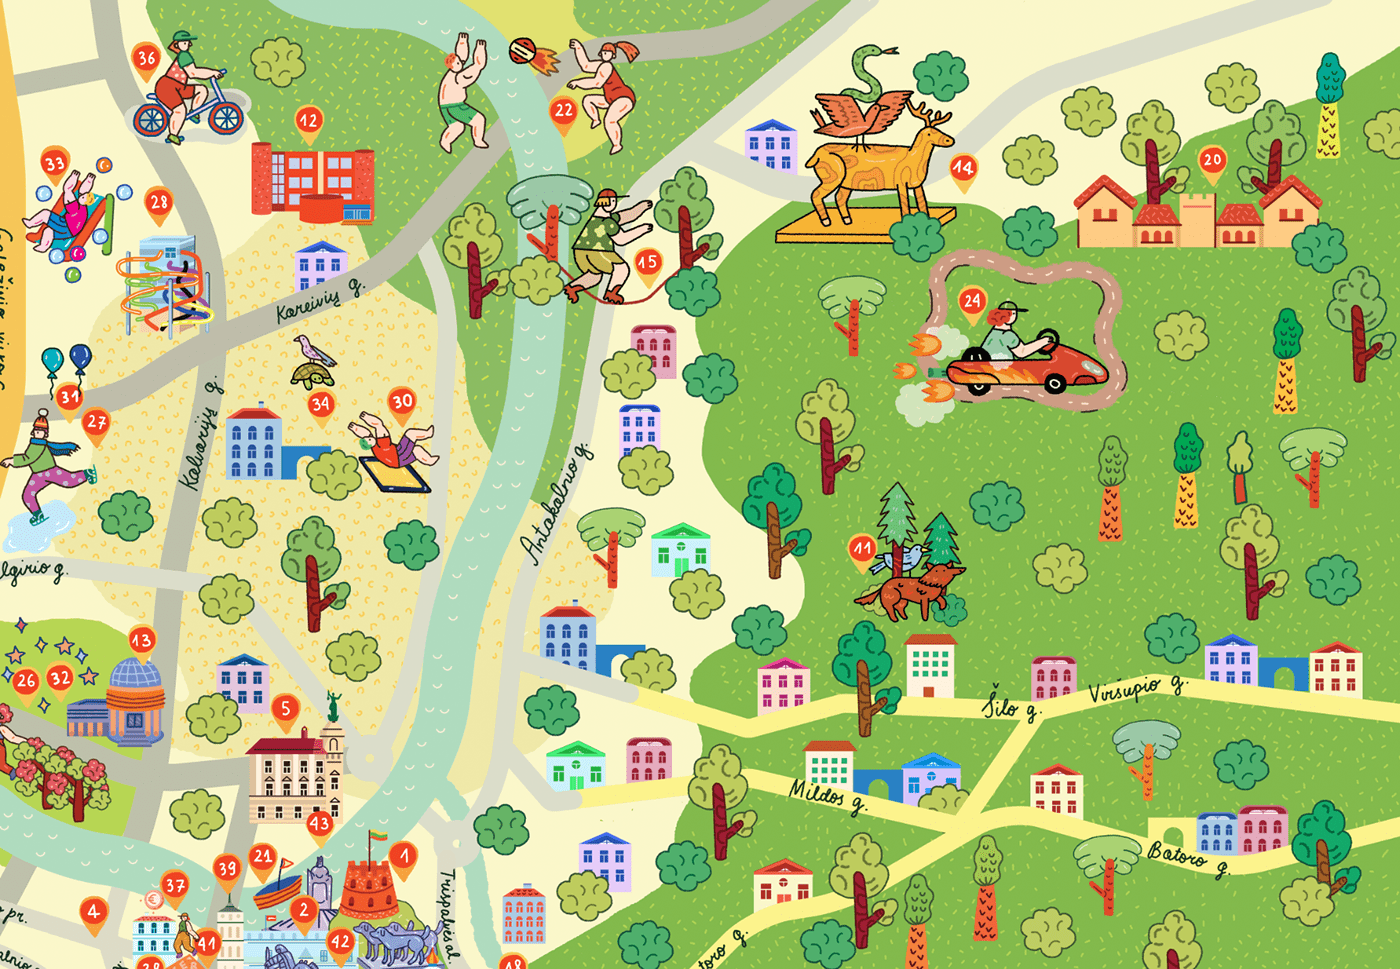 map children illustrated map city kids map editorial educational map capital map